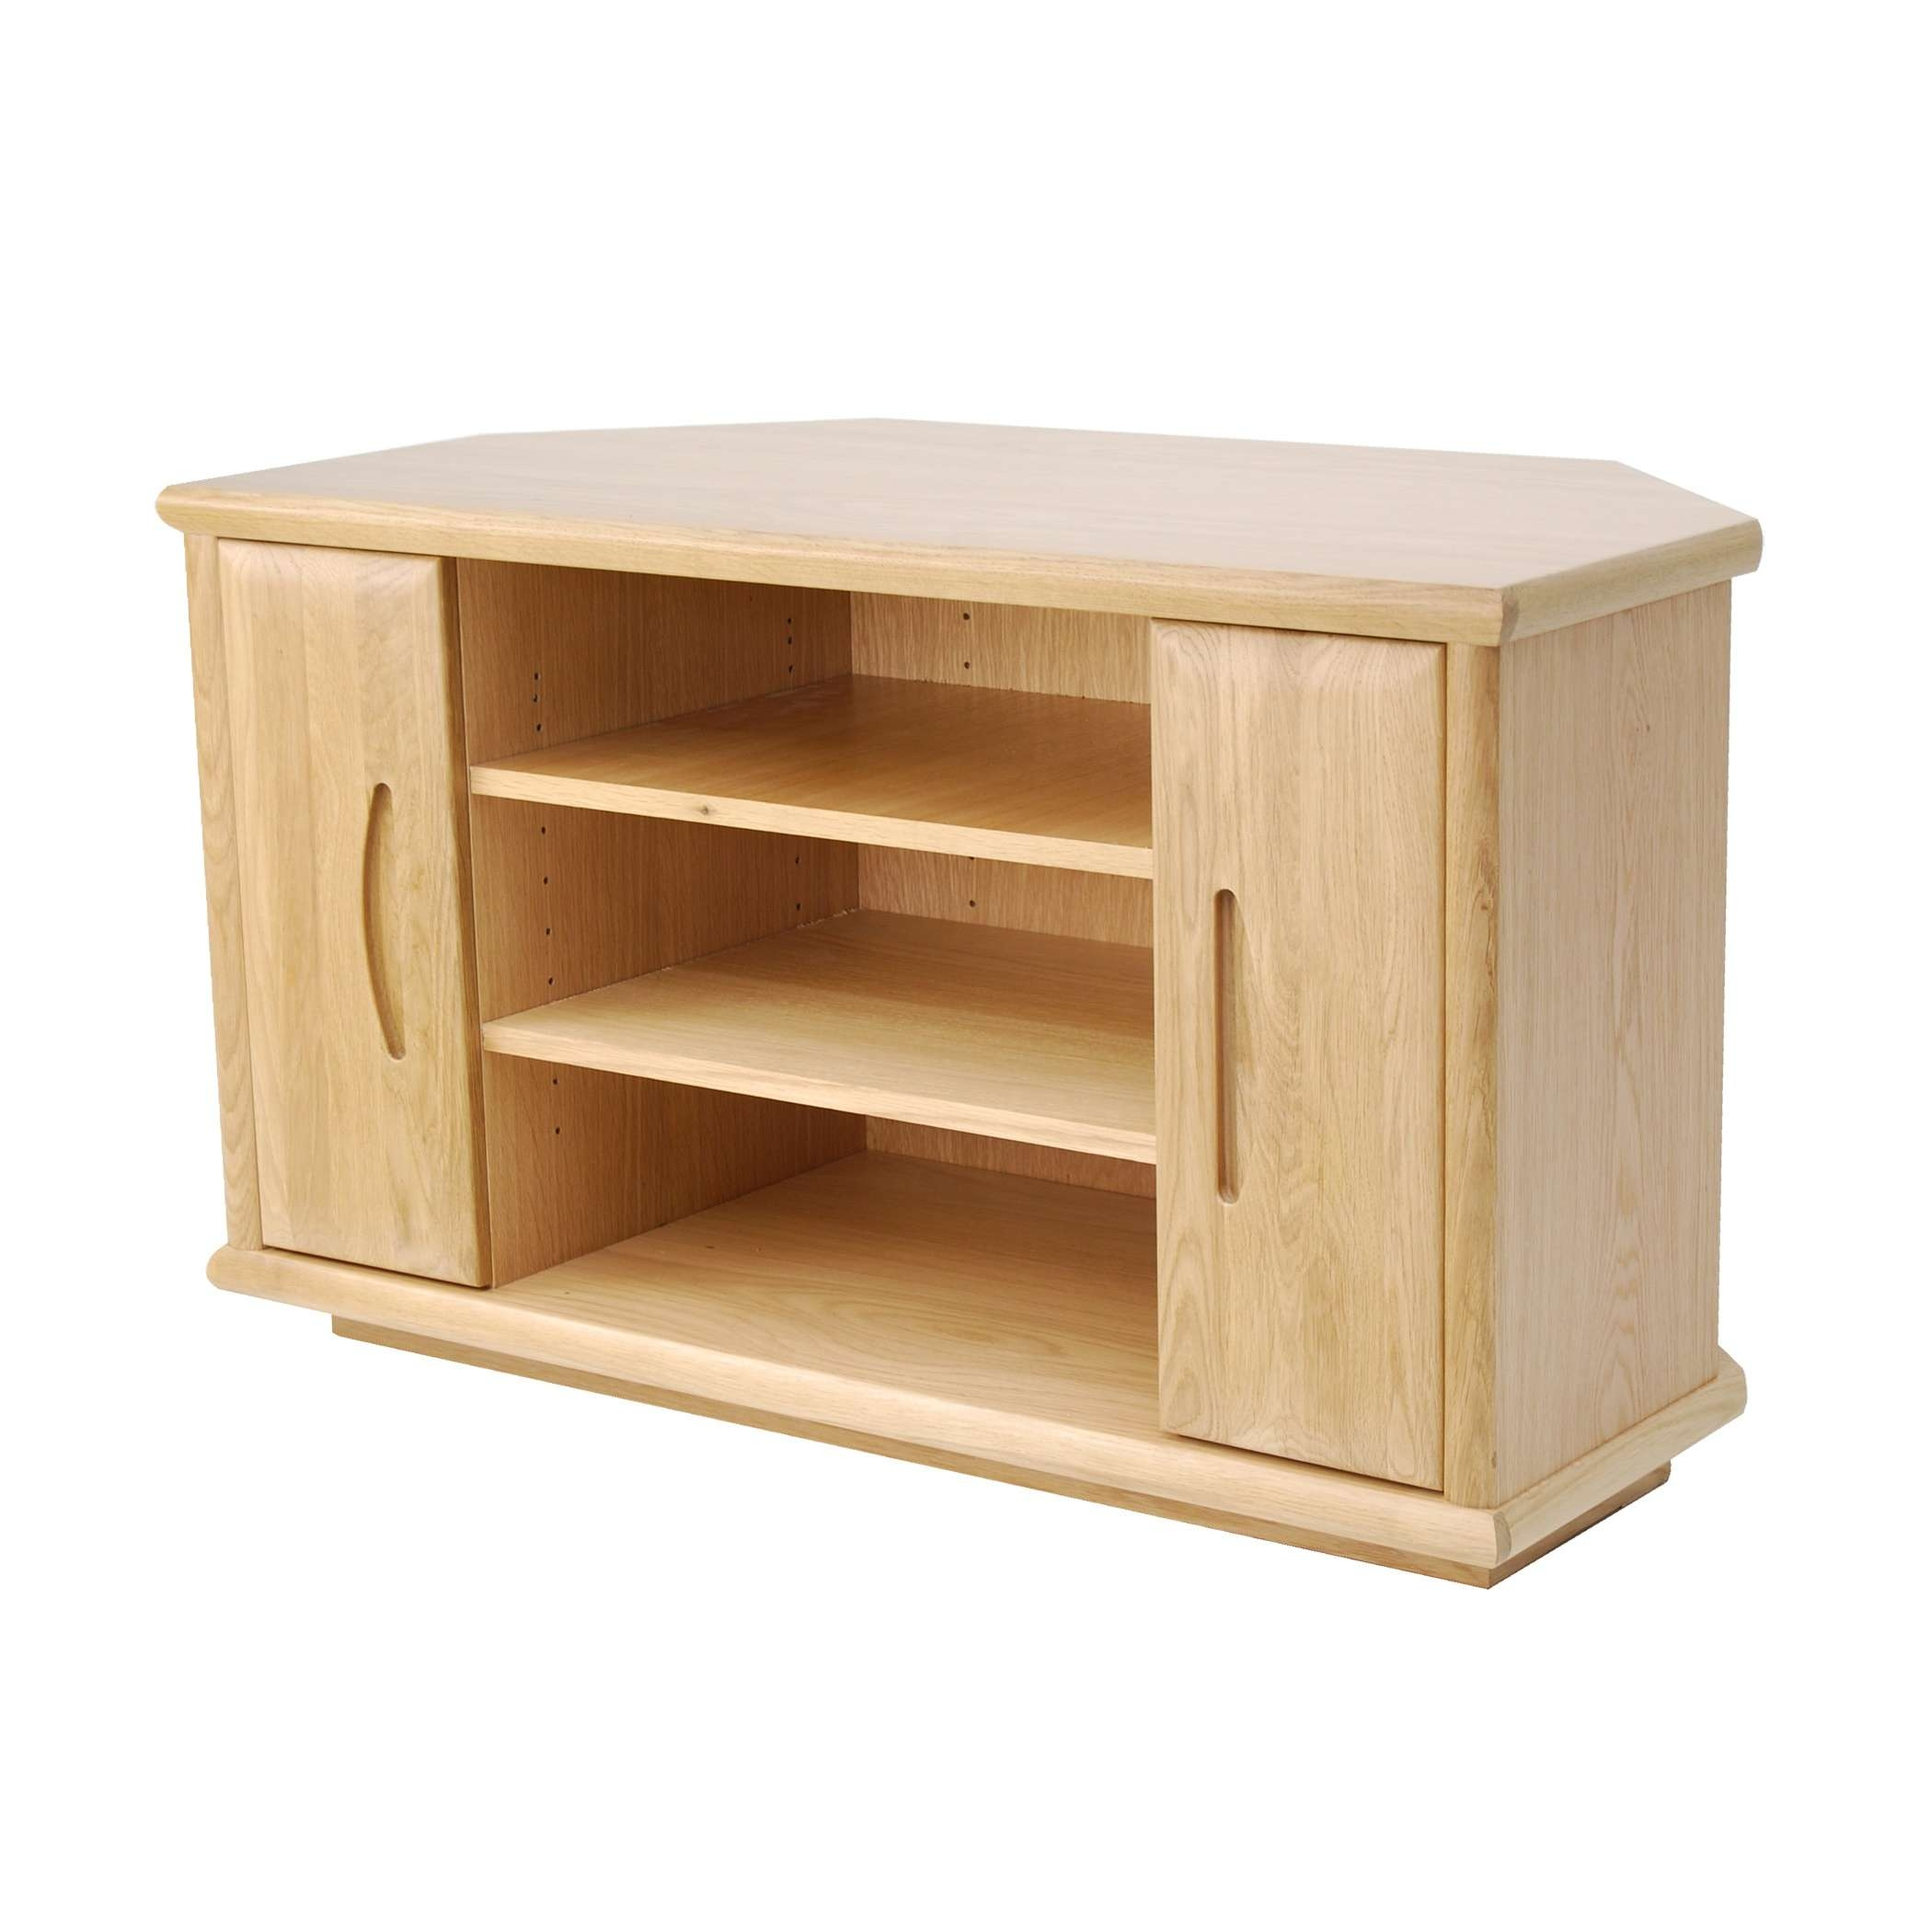 Oak Corner Tv Stand | Gola Furniture Uk In Dark Wood Corner Tv Stands (View 5 of 15)